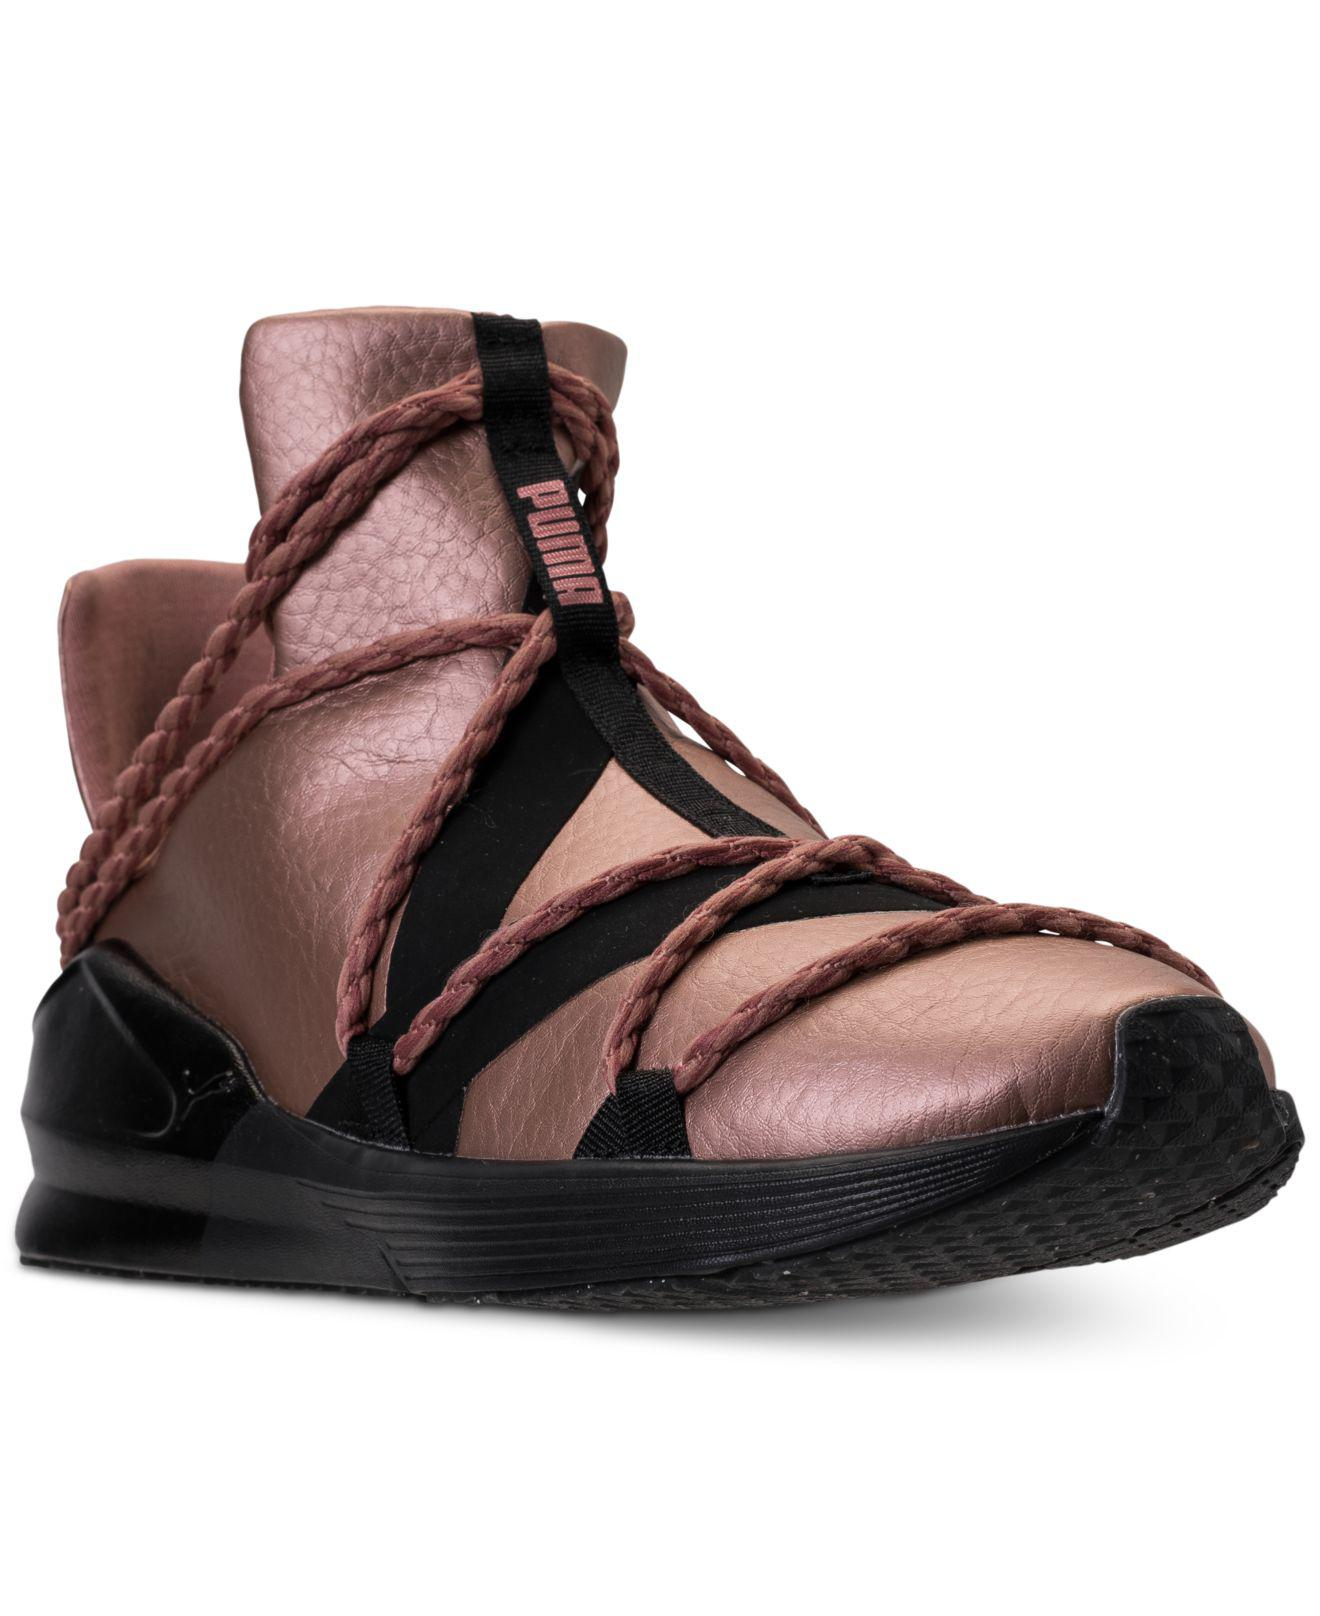 b8e535c27a4f29 ... Lyst - Puma Women s Fierce Rope Copper Velvet Rope Training Sneakers .